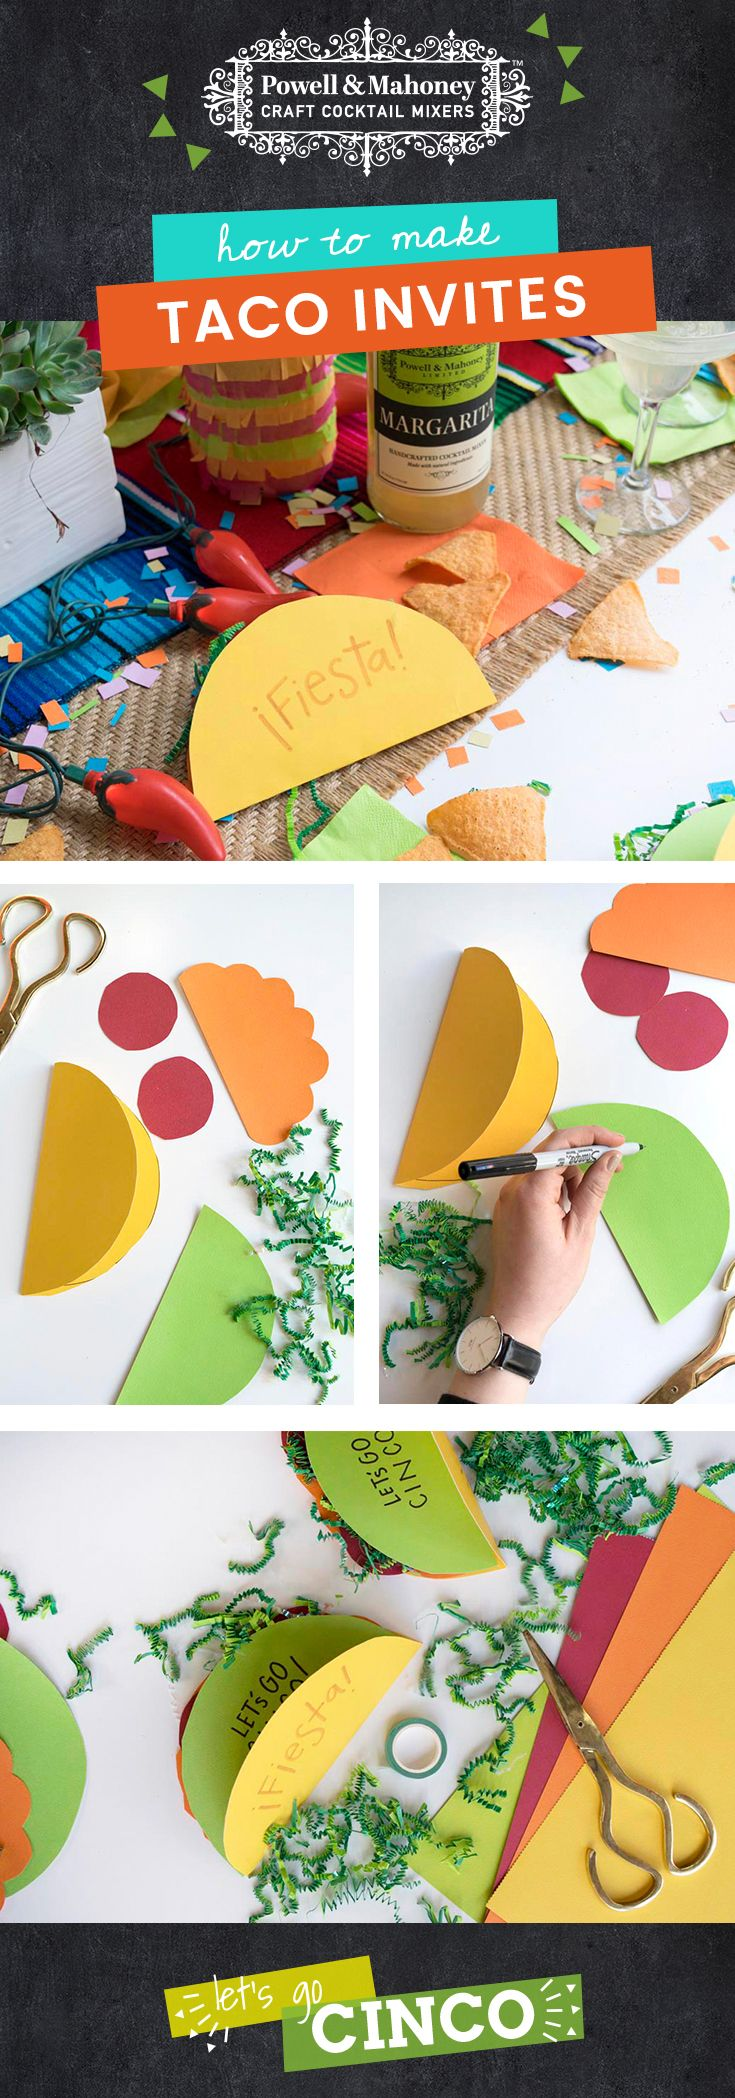 Taco bout a cute invite! Tell your amigos about your next fiesta with these invitations: 1- Cut a large circle in yellow paper and fold in half.  2- Cut out a half circle of paper and write party info on this piece.  3- Cut out additional taco ingredients in various colors.  4- Glue ingredients to half circle and attach to one side of the inside of the taco.  5- Fiesta! #CraftYourCocktail